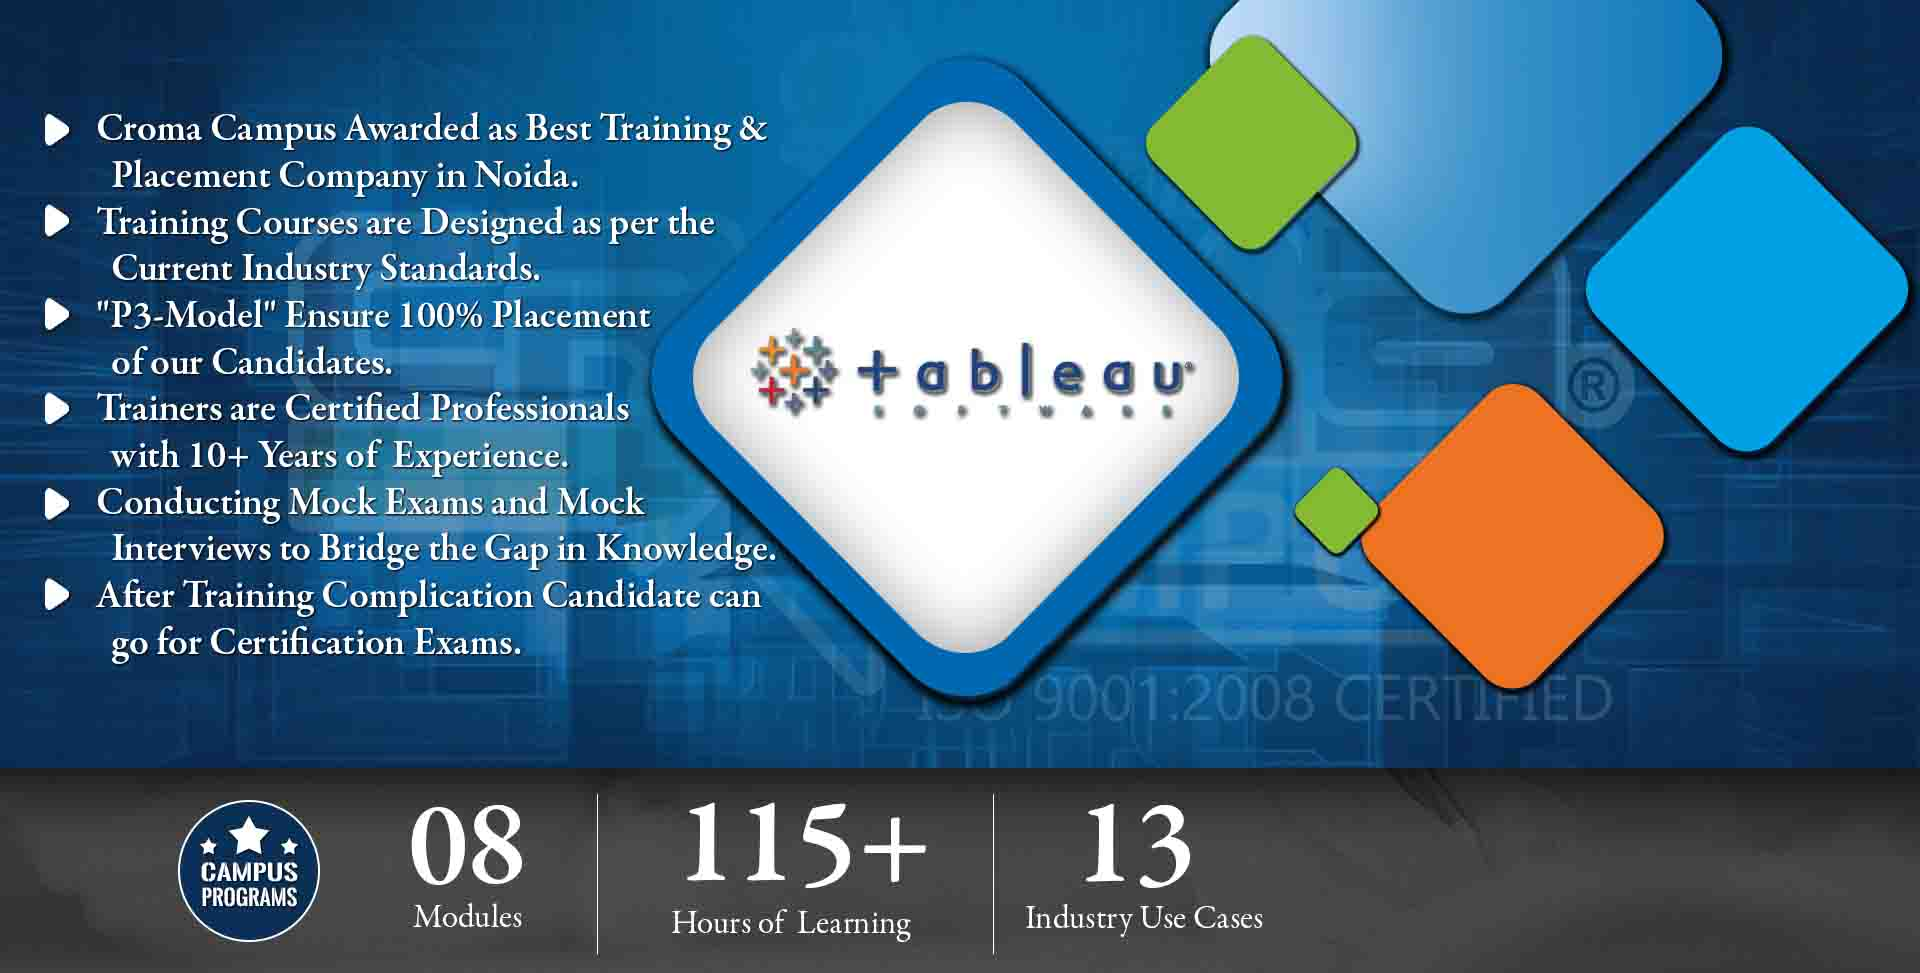 Tableau Training in Noida- Croma Campus